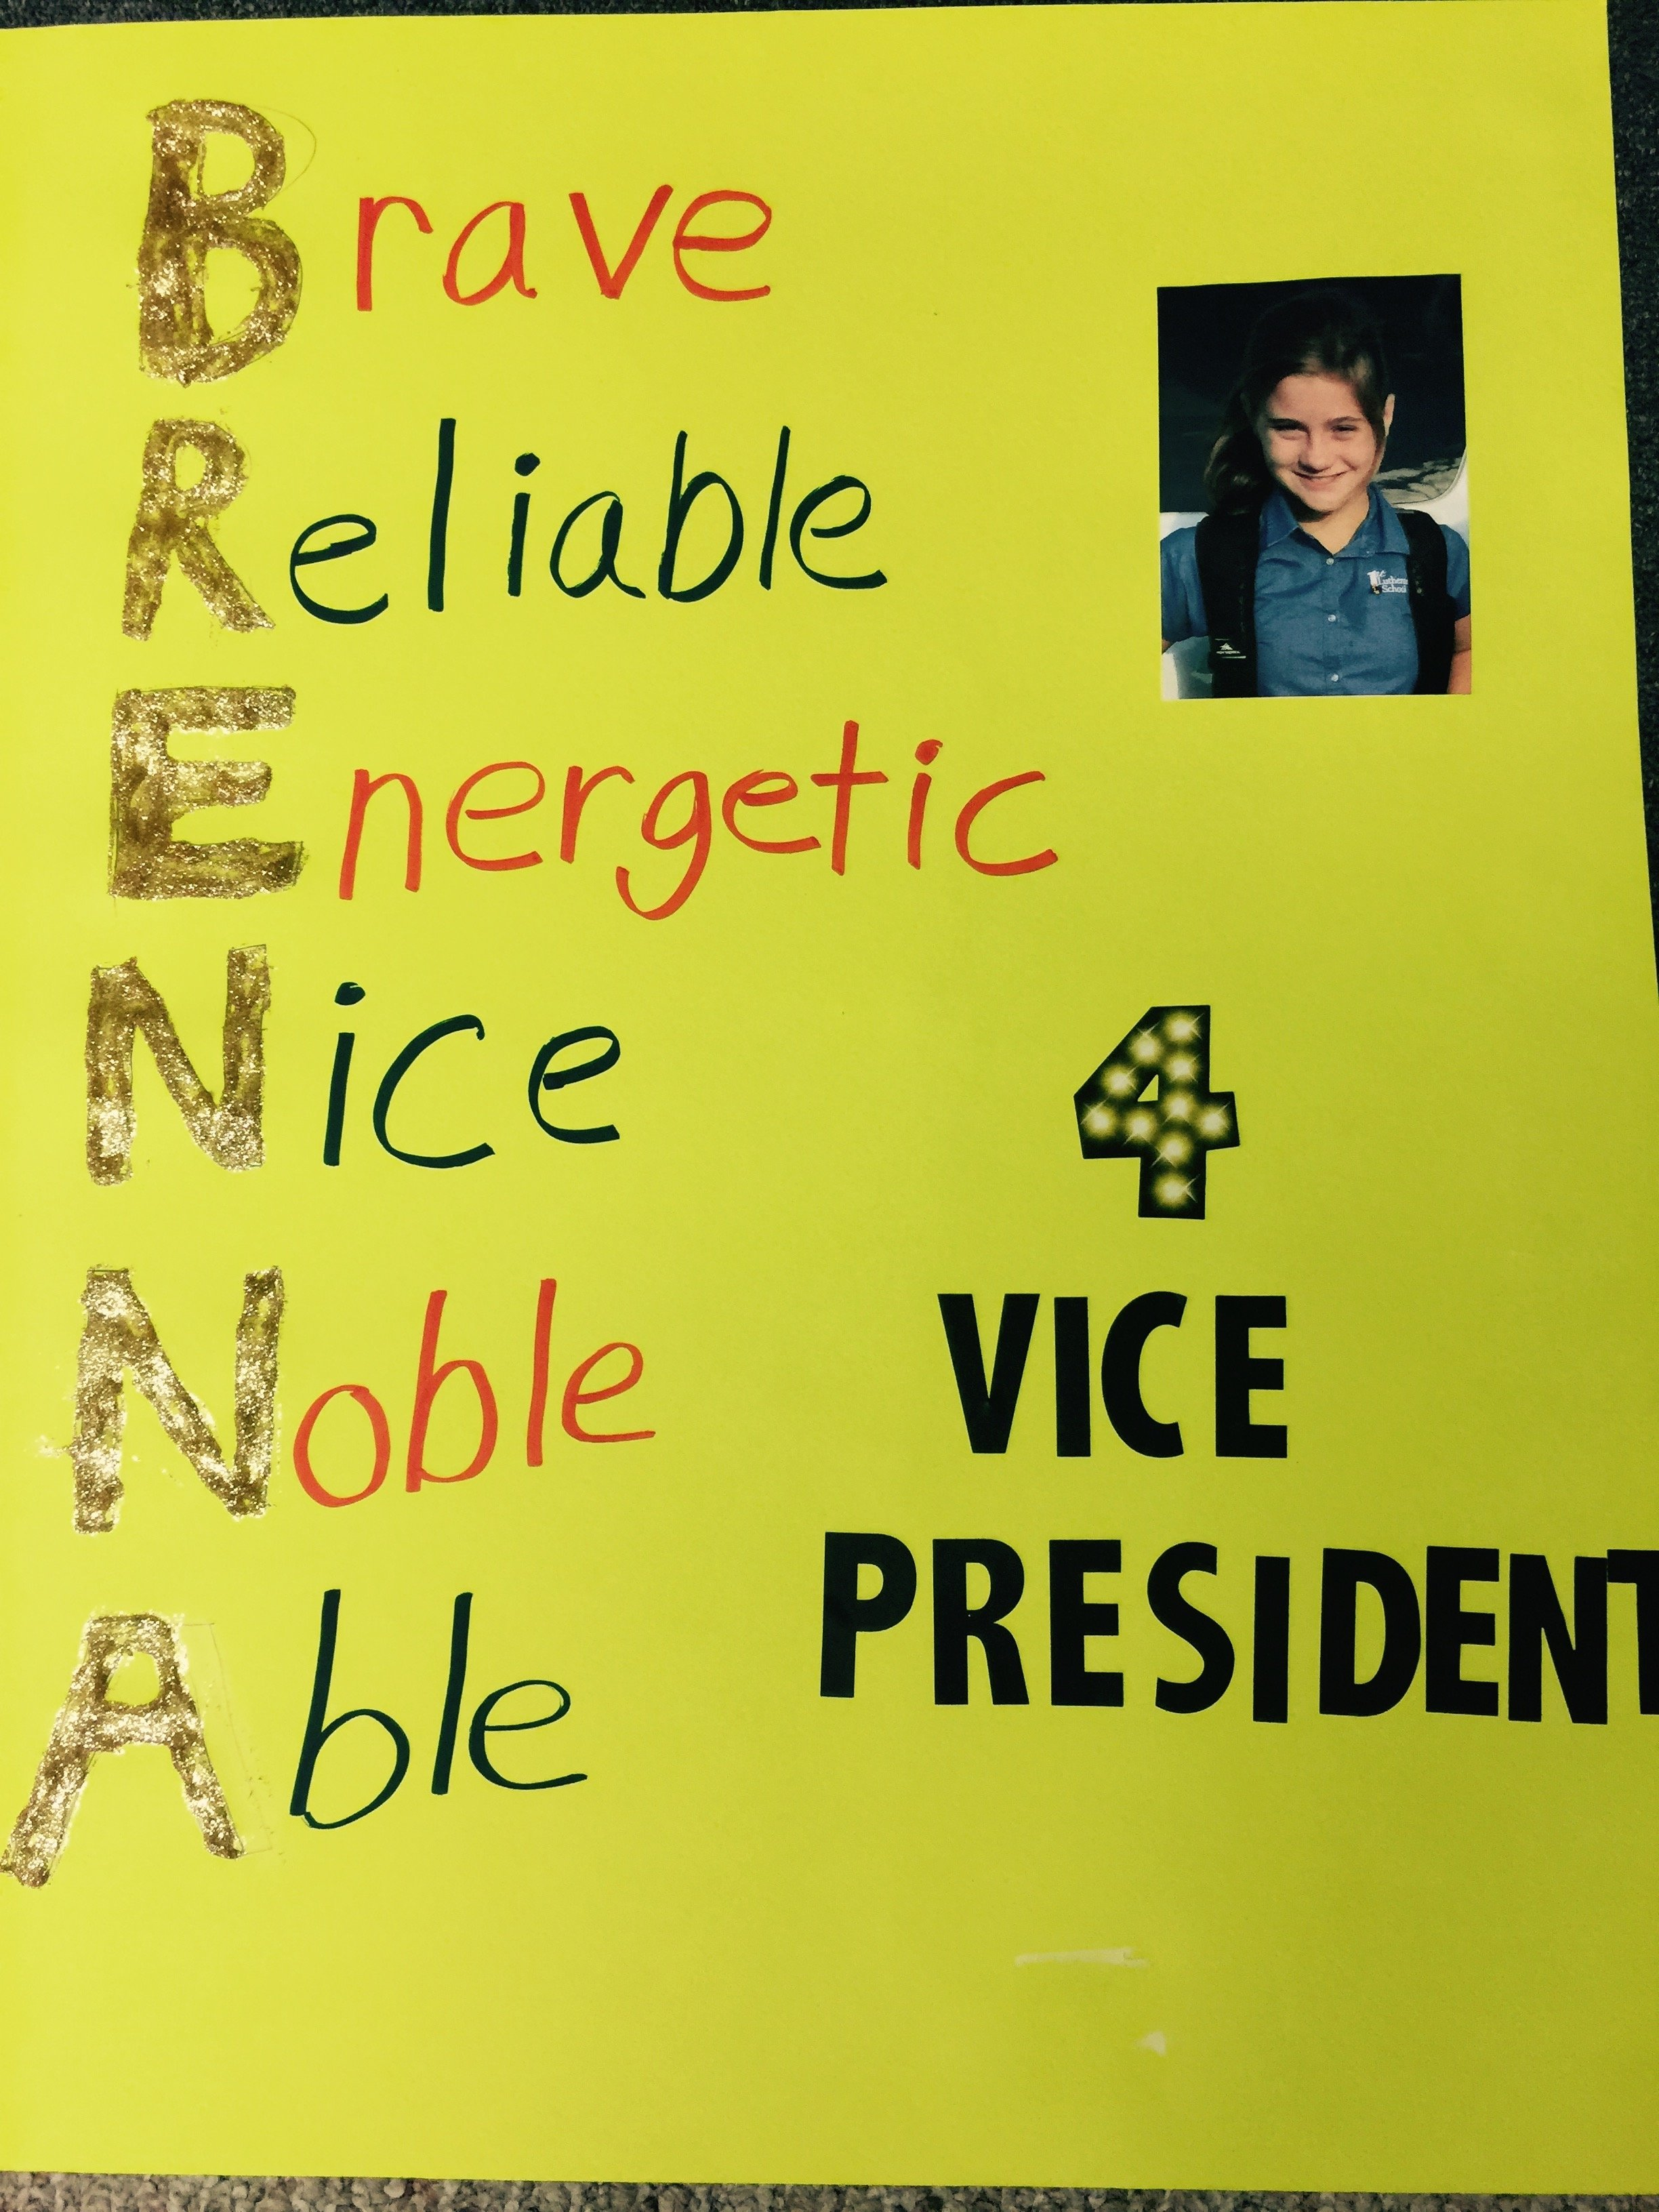 10 Amazing Middle School Student Council Ideas pinlea taylor on elementary school student council election 3 2020